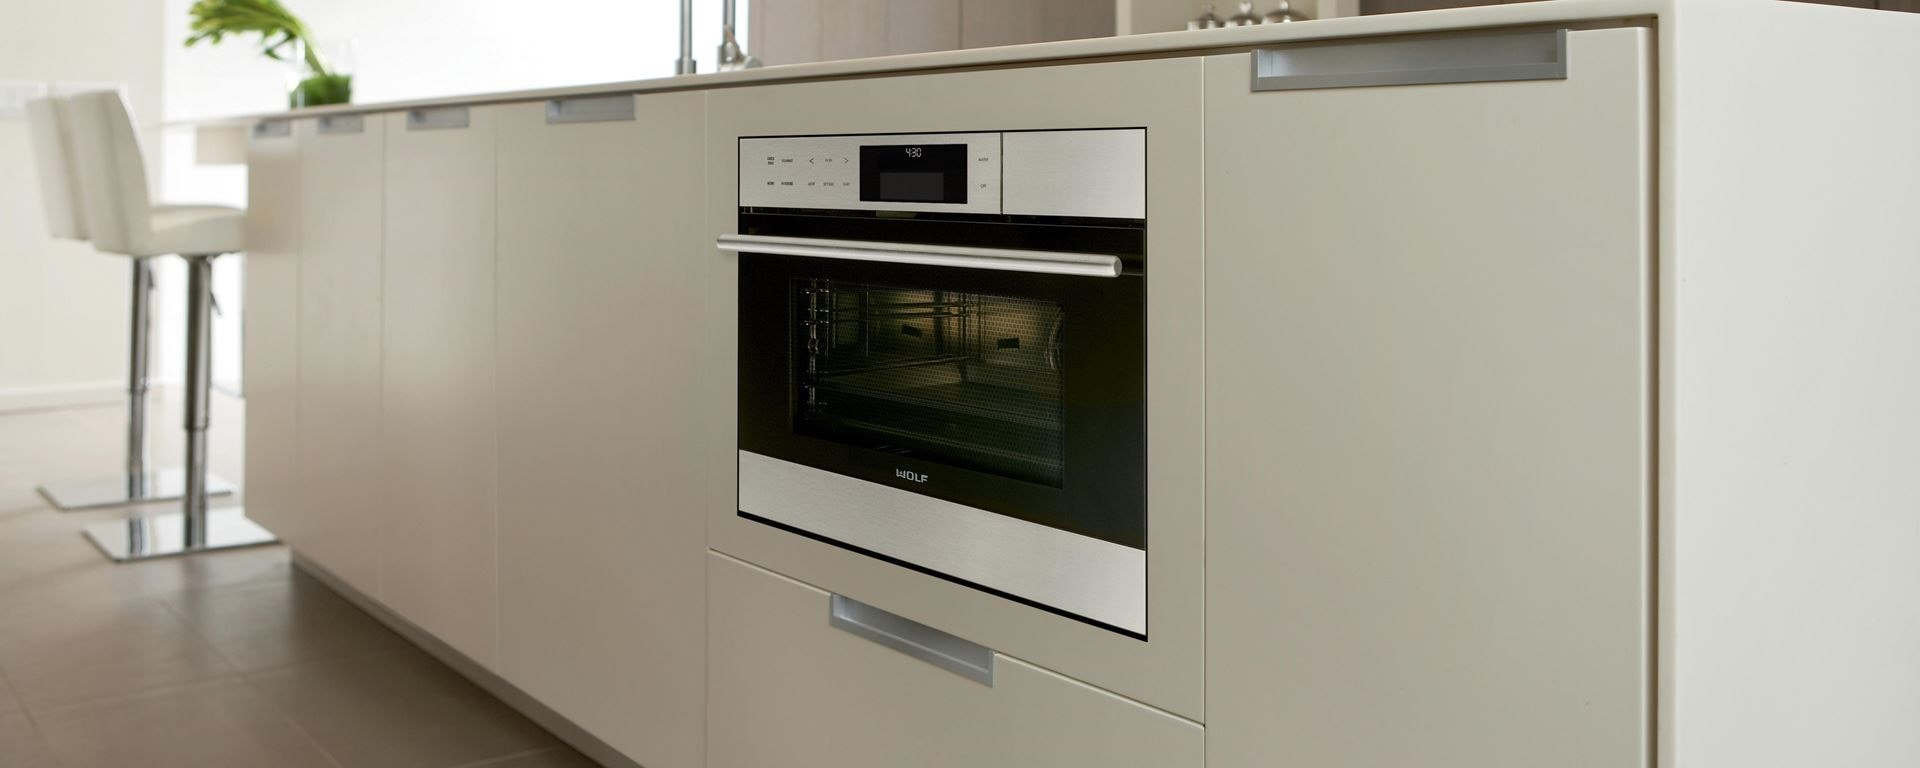 Wolf convection steam oven built-in next to Sub-Zero undercounter refrigeration